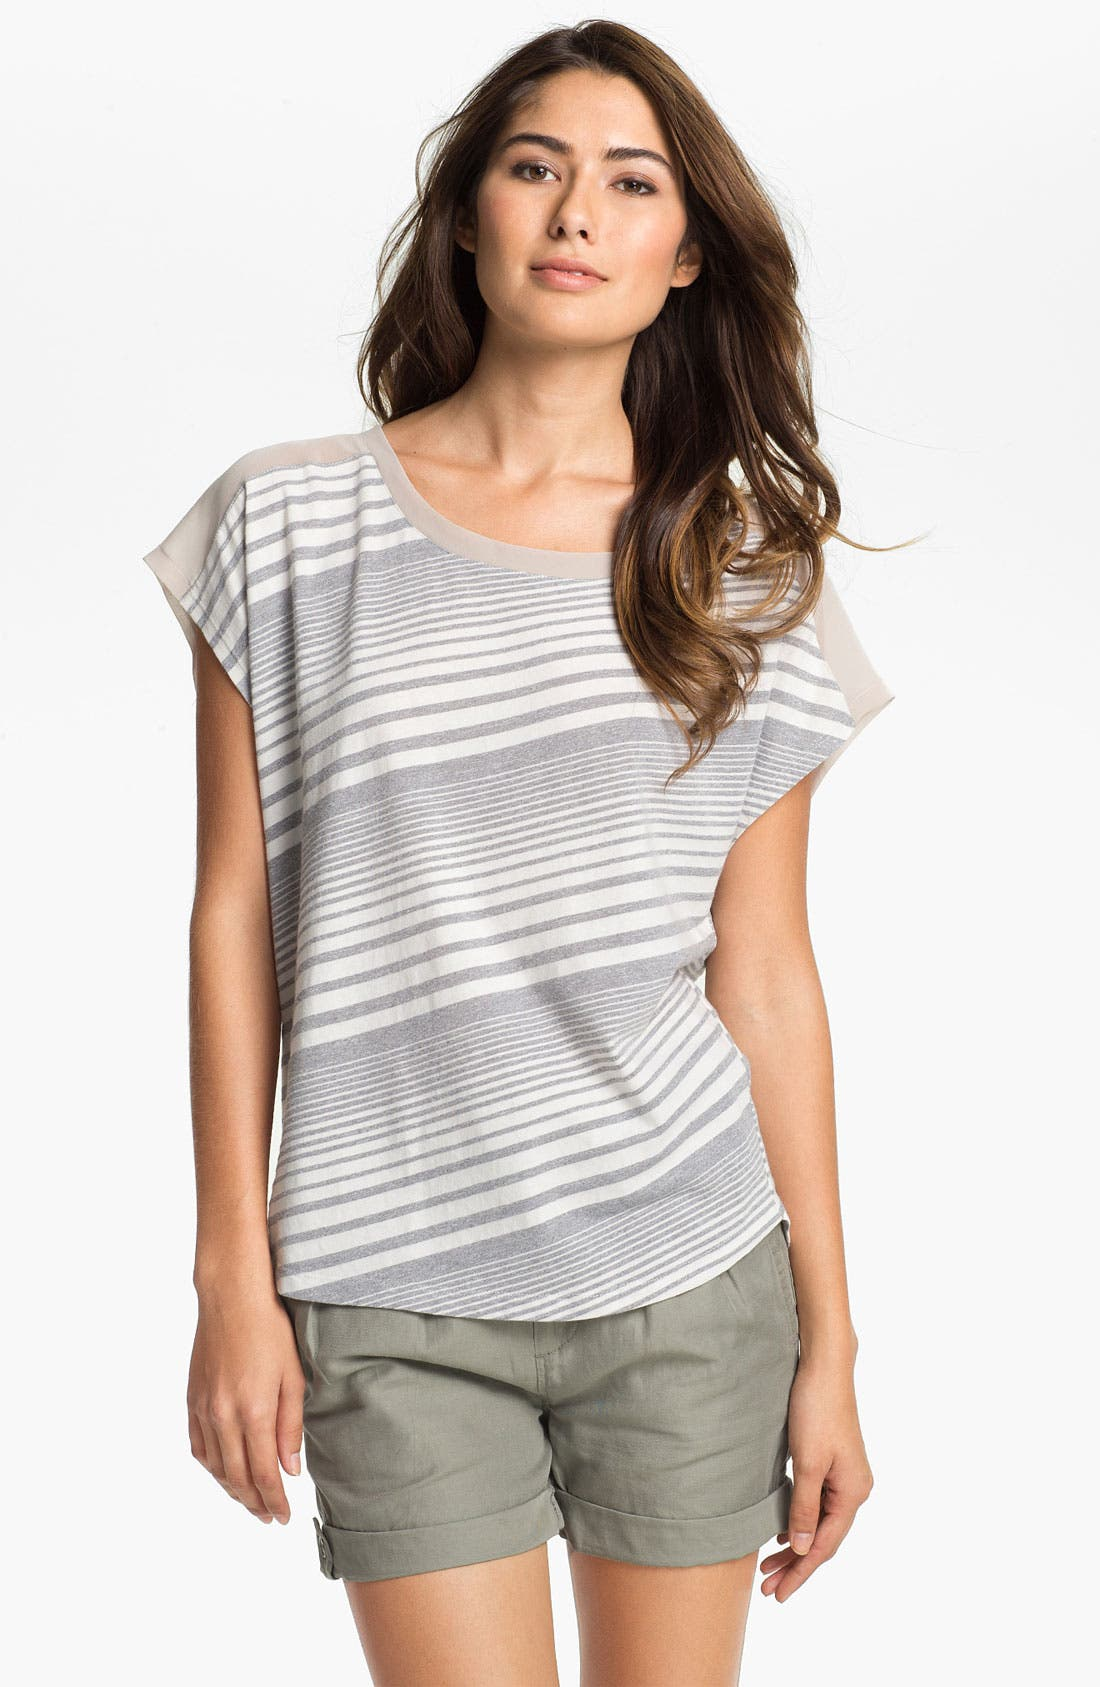 Alternate Image 1 Selected - Two by Vince Camuto Tie Back Tee